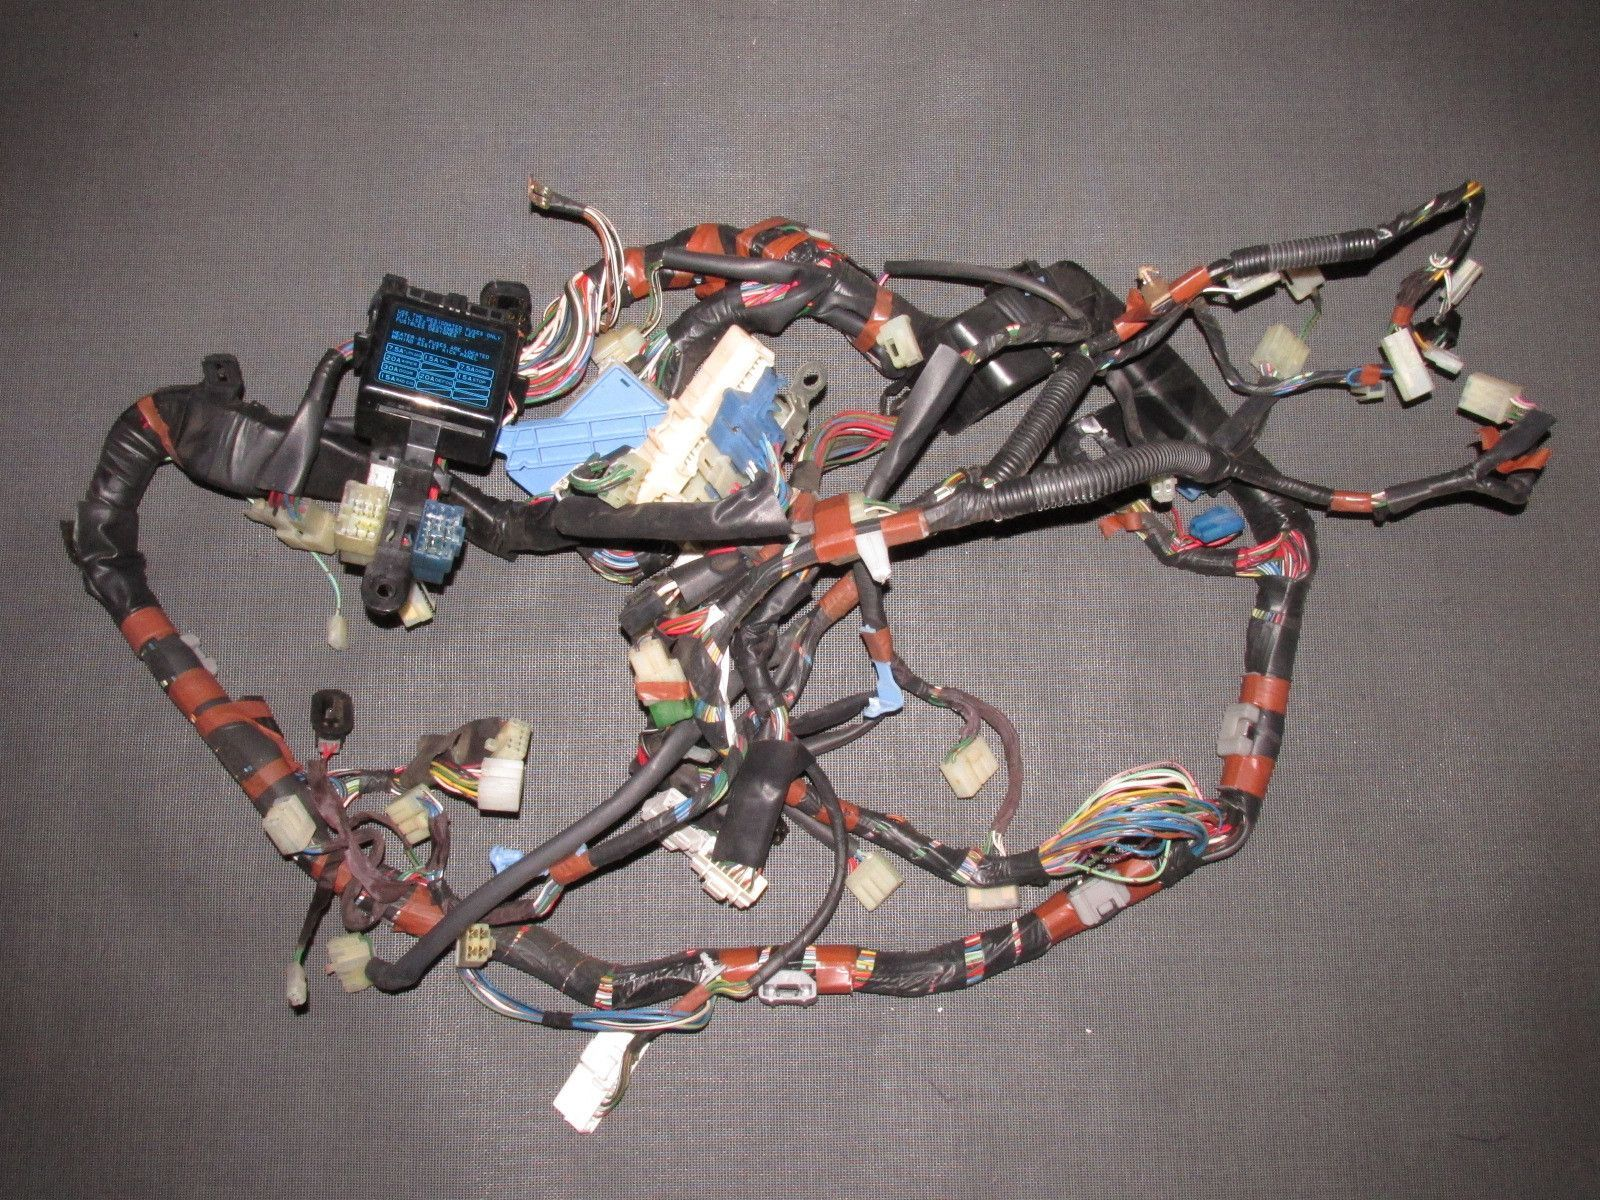 85 86 87 88 89 toyota mr2 oem interior fuse box dash wiring harness rh pinterest com